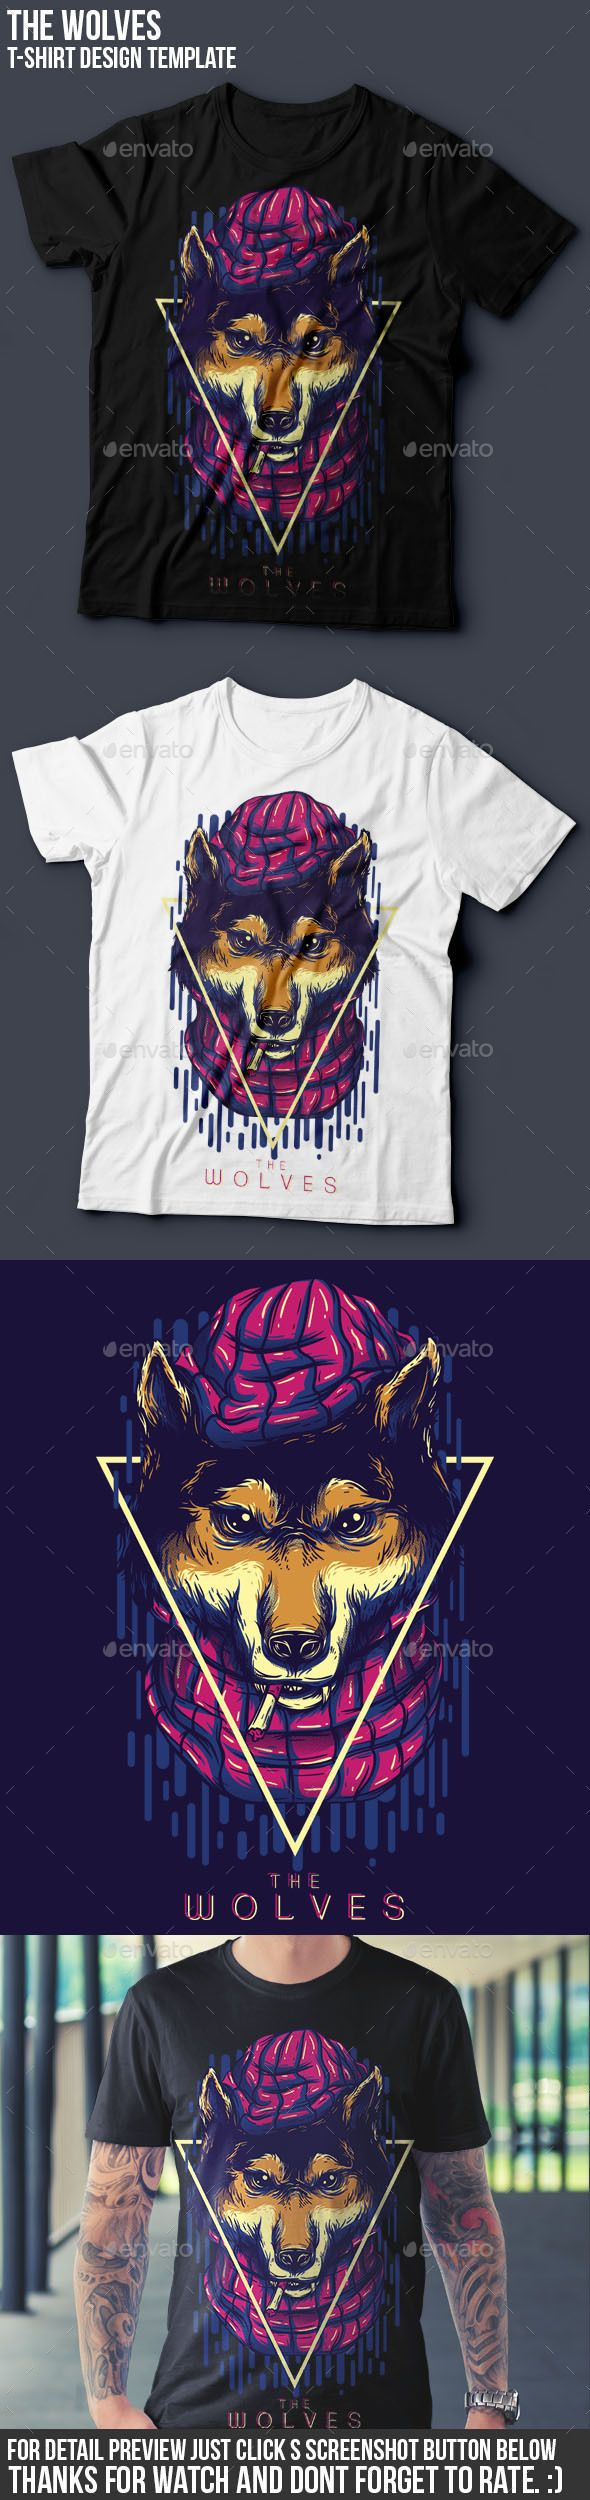 Shirt design el paso